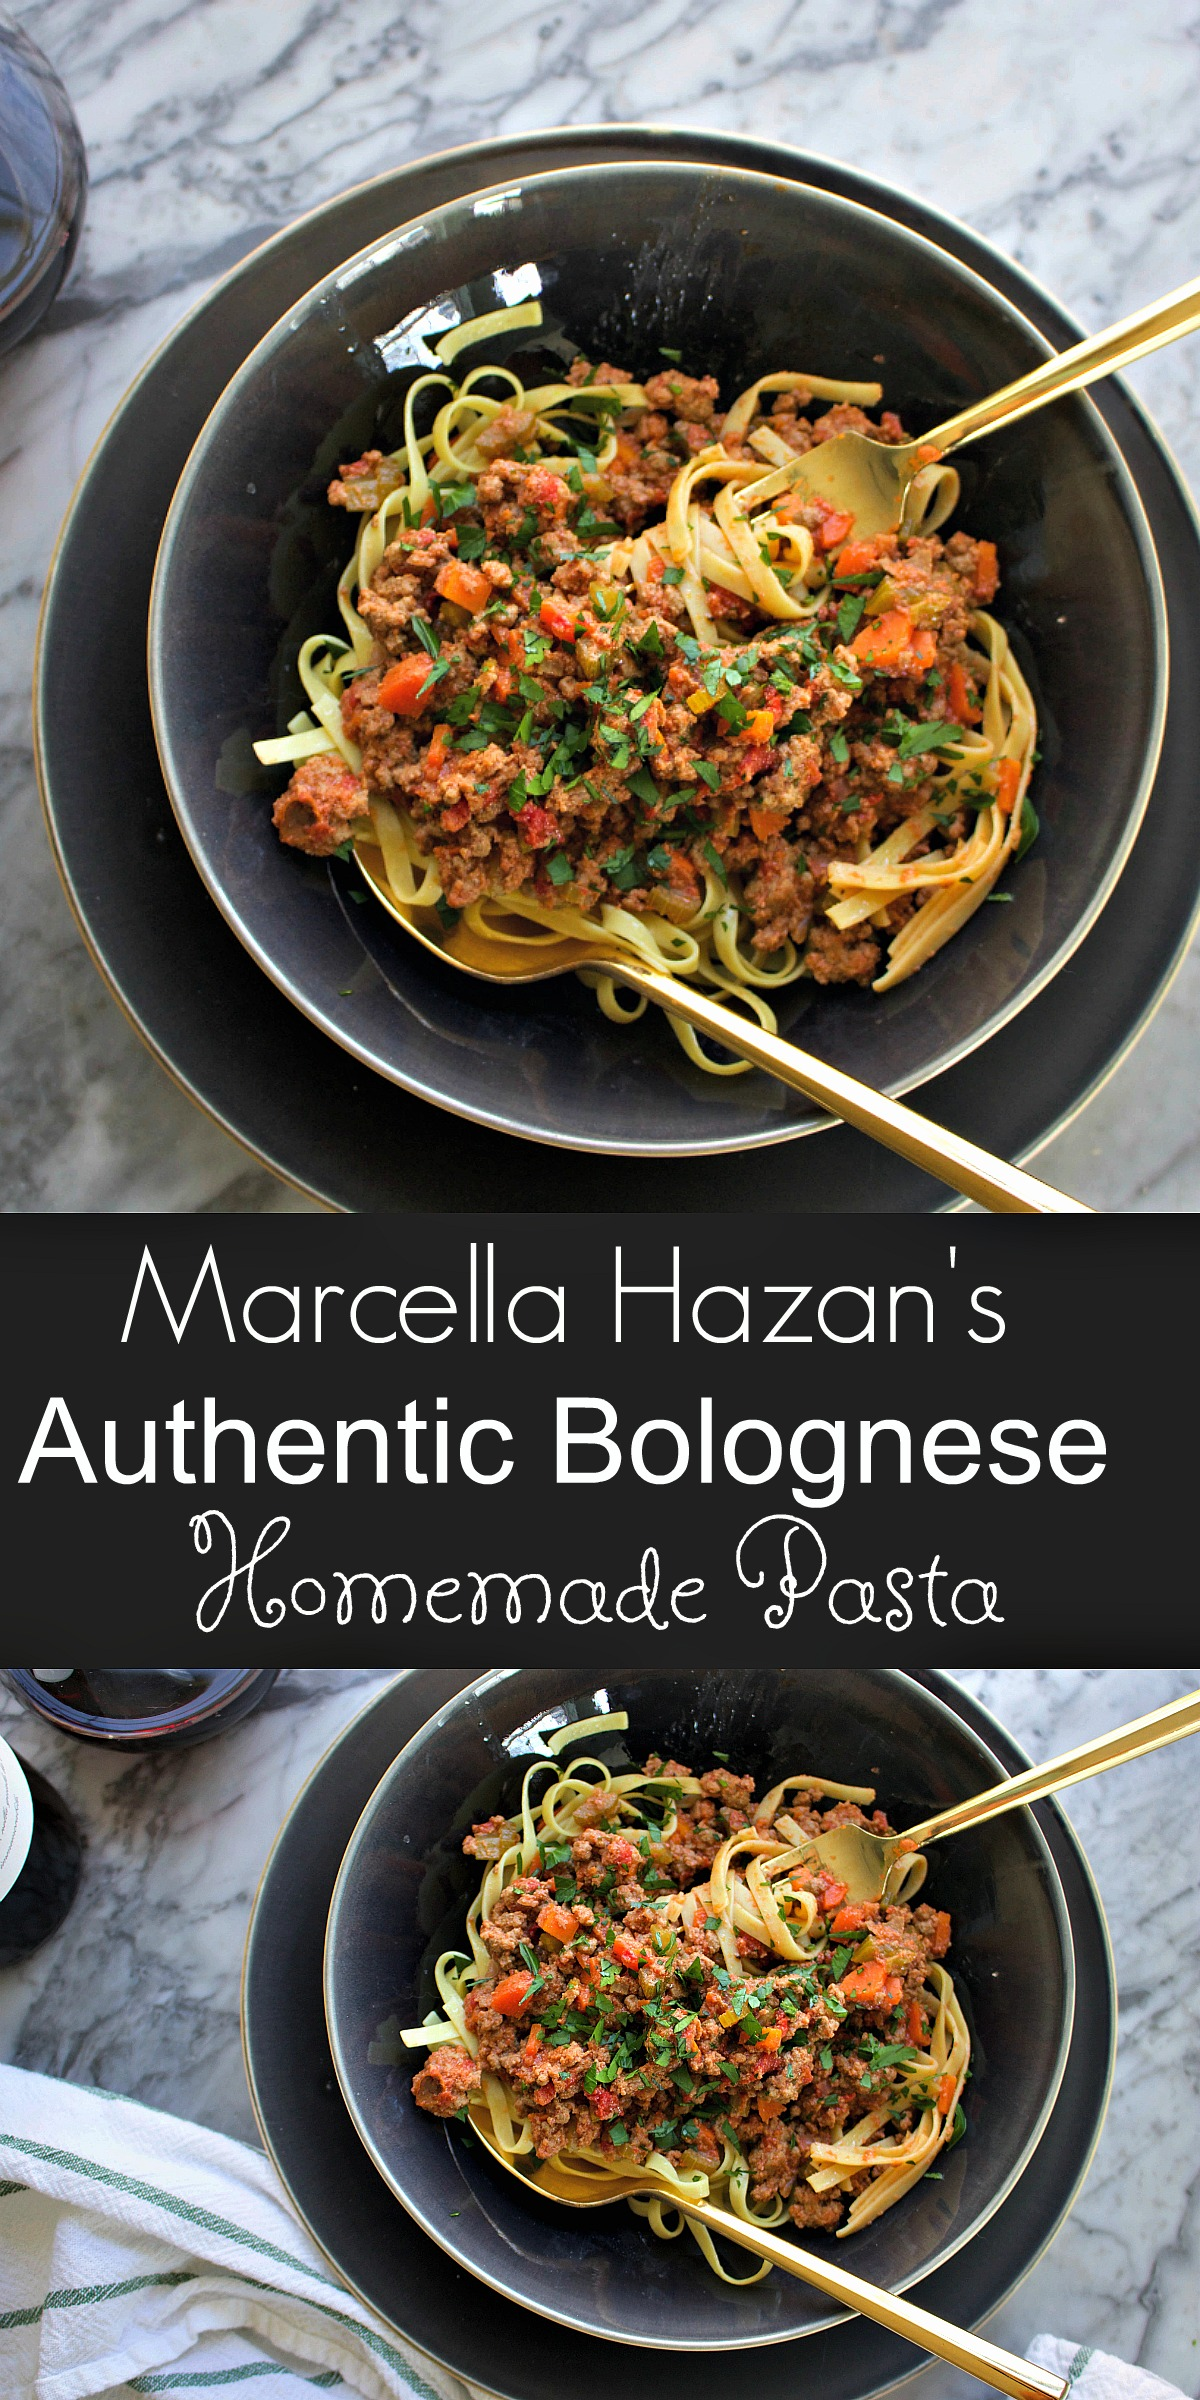 Marcella Hazan's Authentic Bolognese from Spinach Tiger